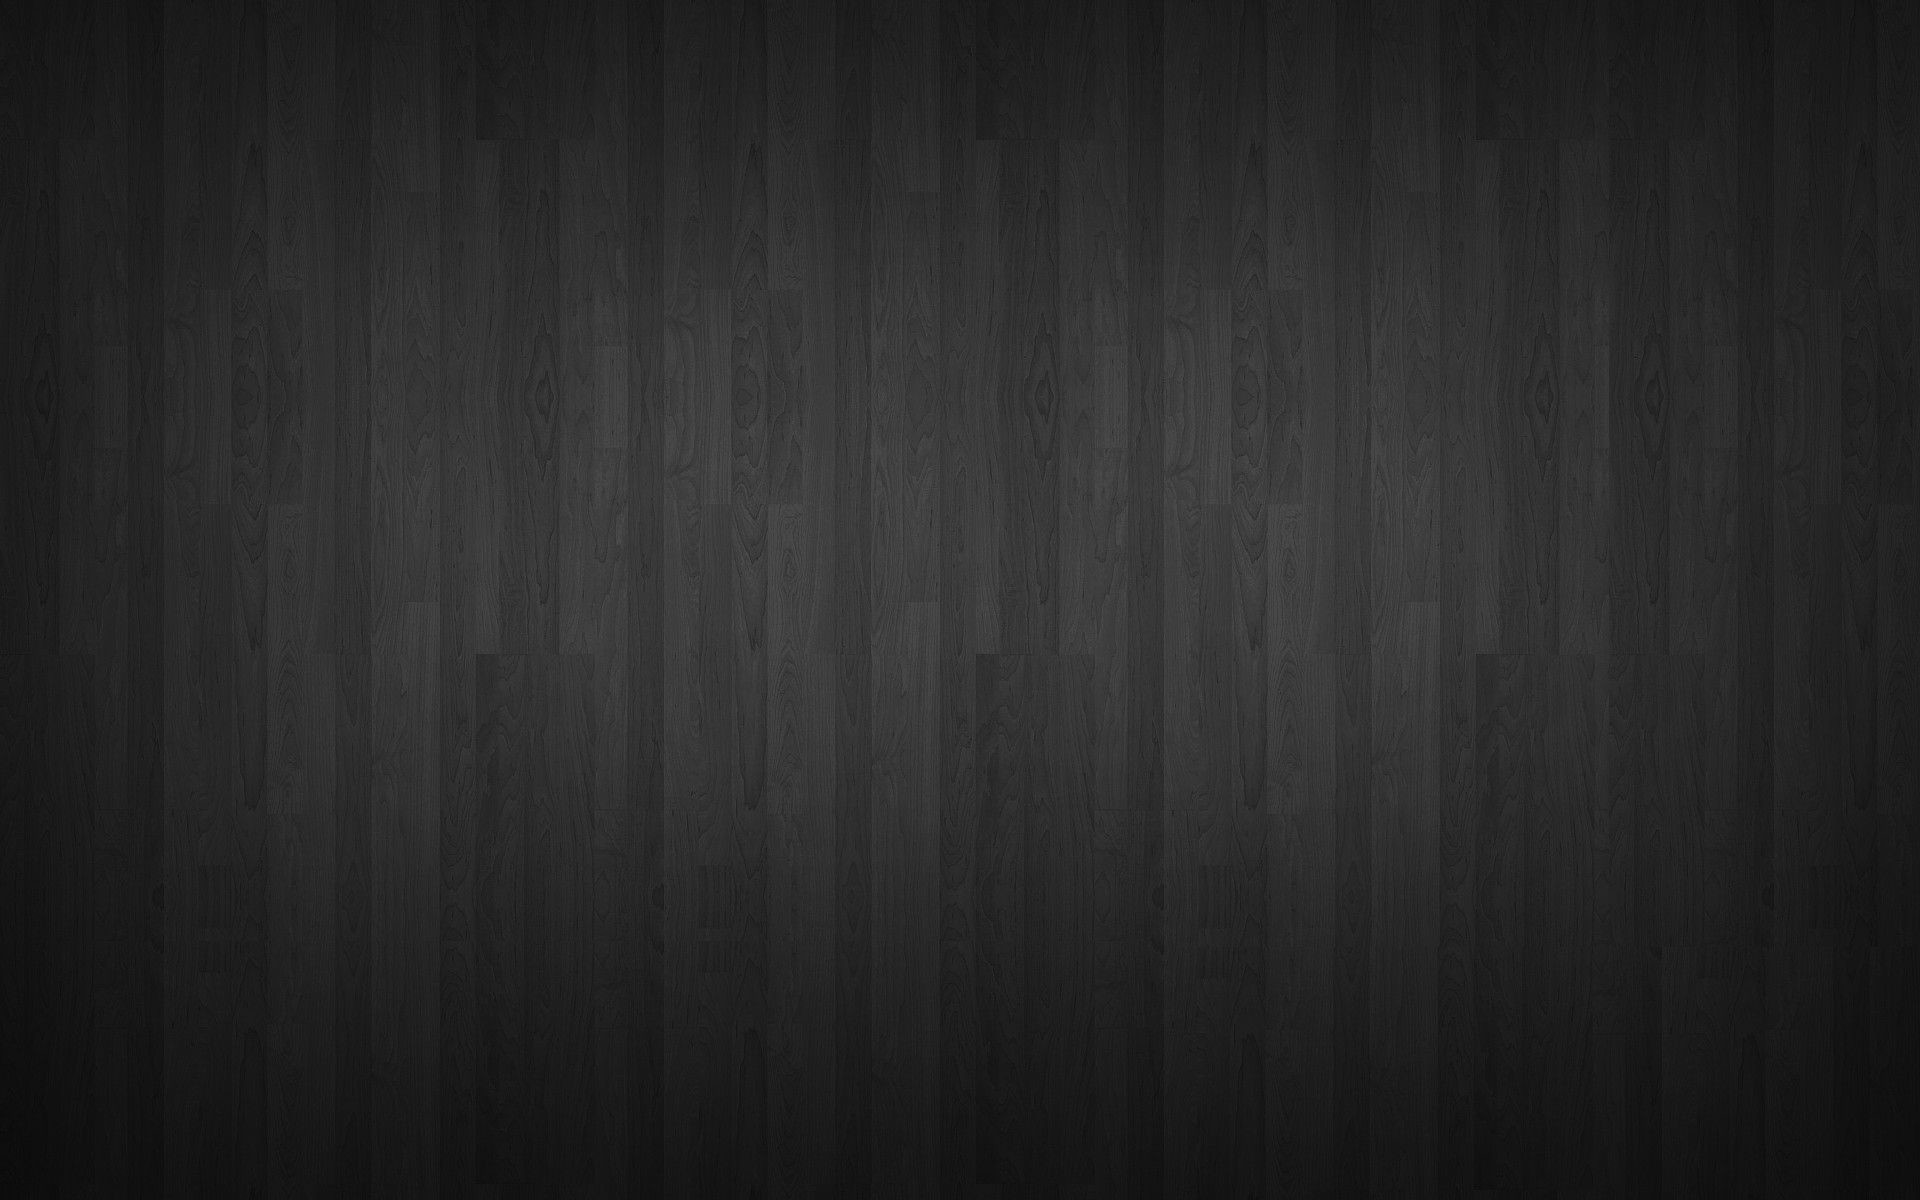 1920x1200 HD Wallpapers Desktop Simple (Plain) HD DeskTop Wallpapers - HD Wallpapers